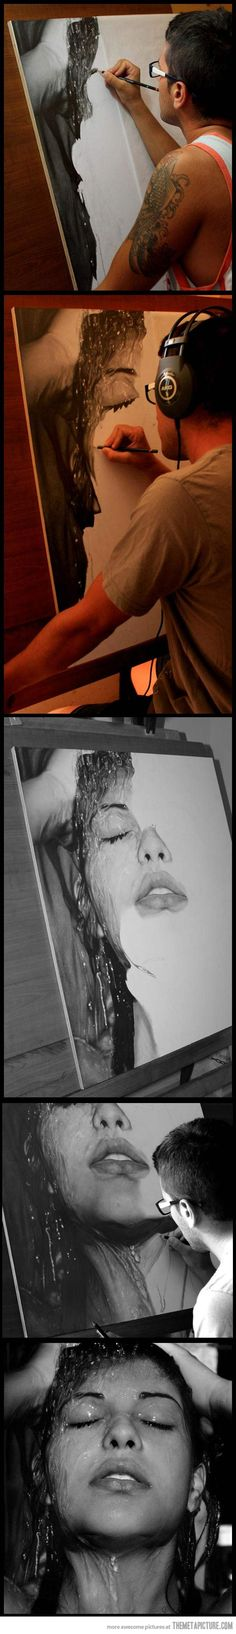 Photorealistic pencil drawing by Diego Fazio, Italy-based artist better known as DiegoKoi ABSOLUTELY AMAZING!!